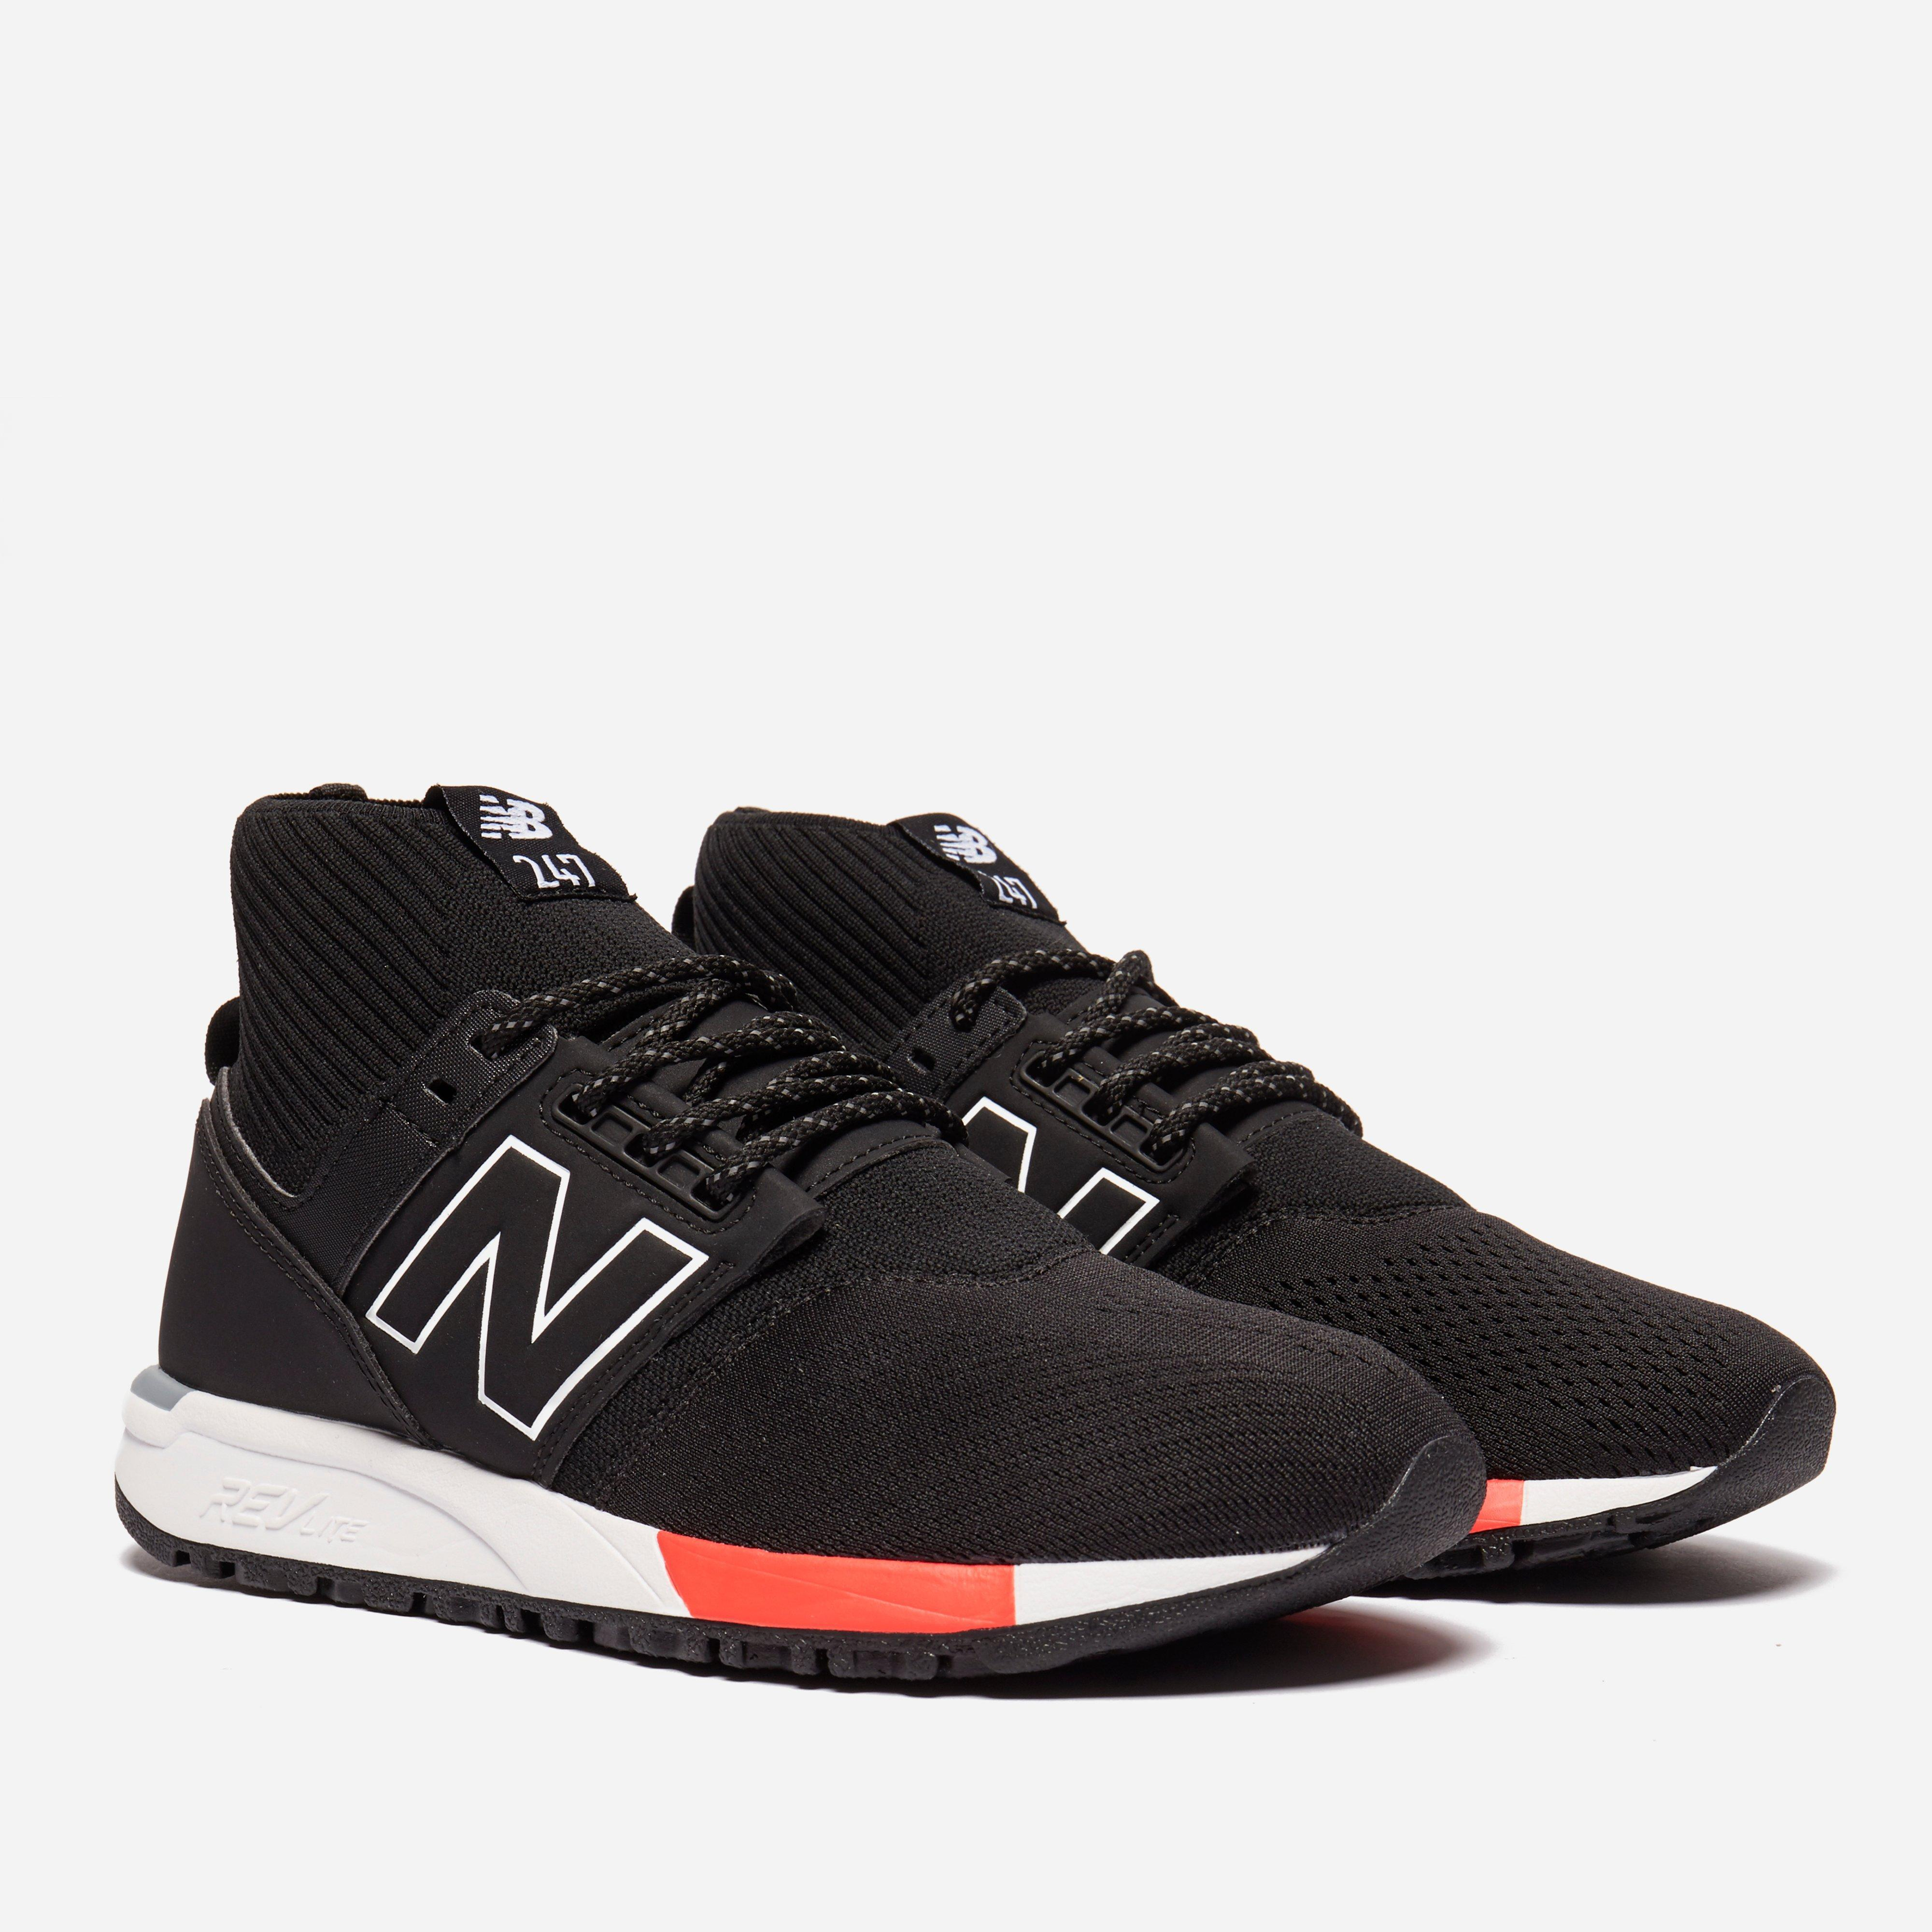 New Balance Synthetic Mrl 274 Of in